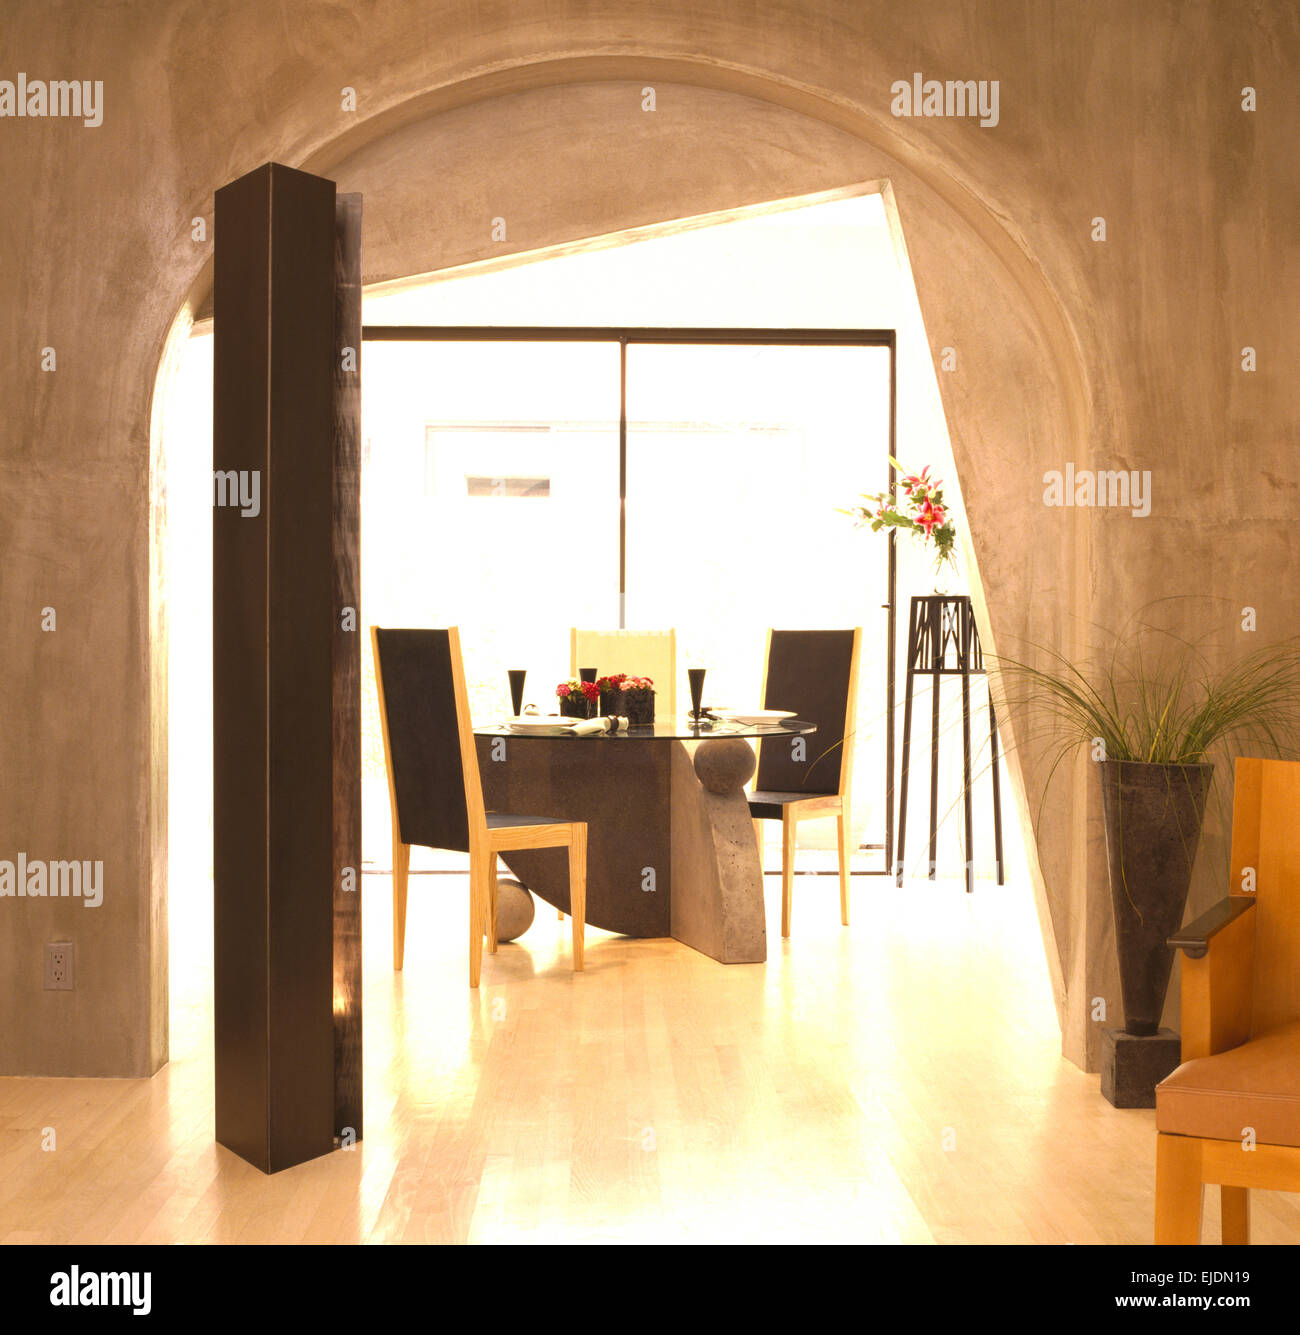 Concrete walls and polished floor in dining area with arched doorway and tall speaker in late eighties Californian - Stock Image